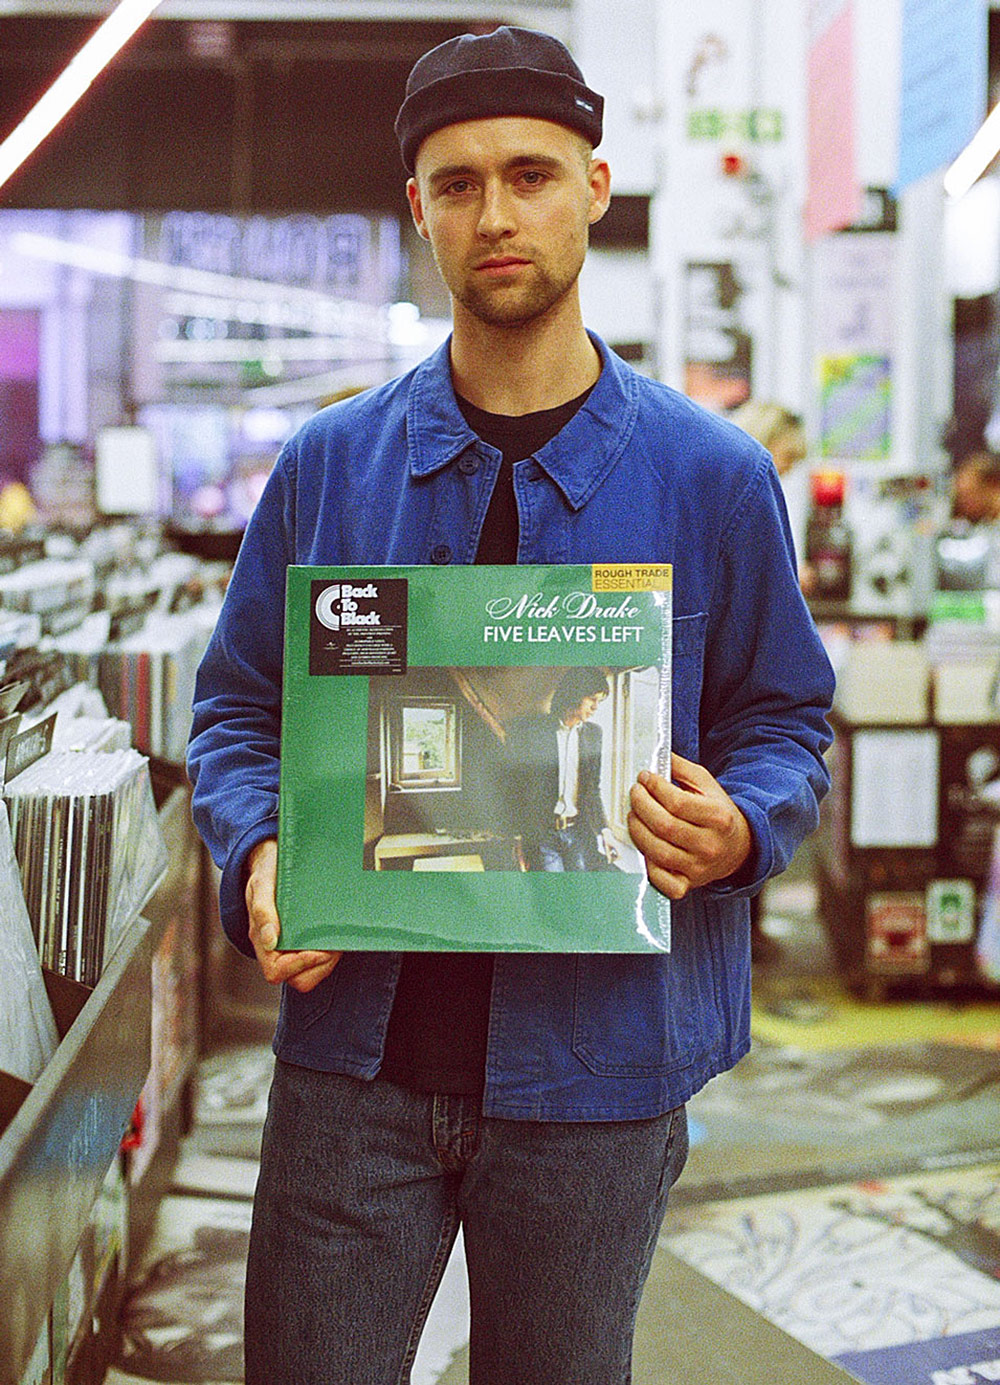 Record Shopping with Haux